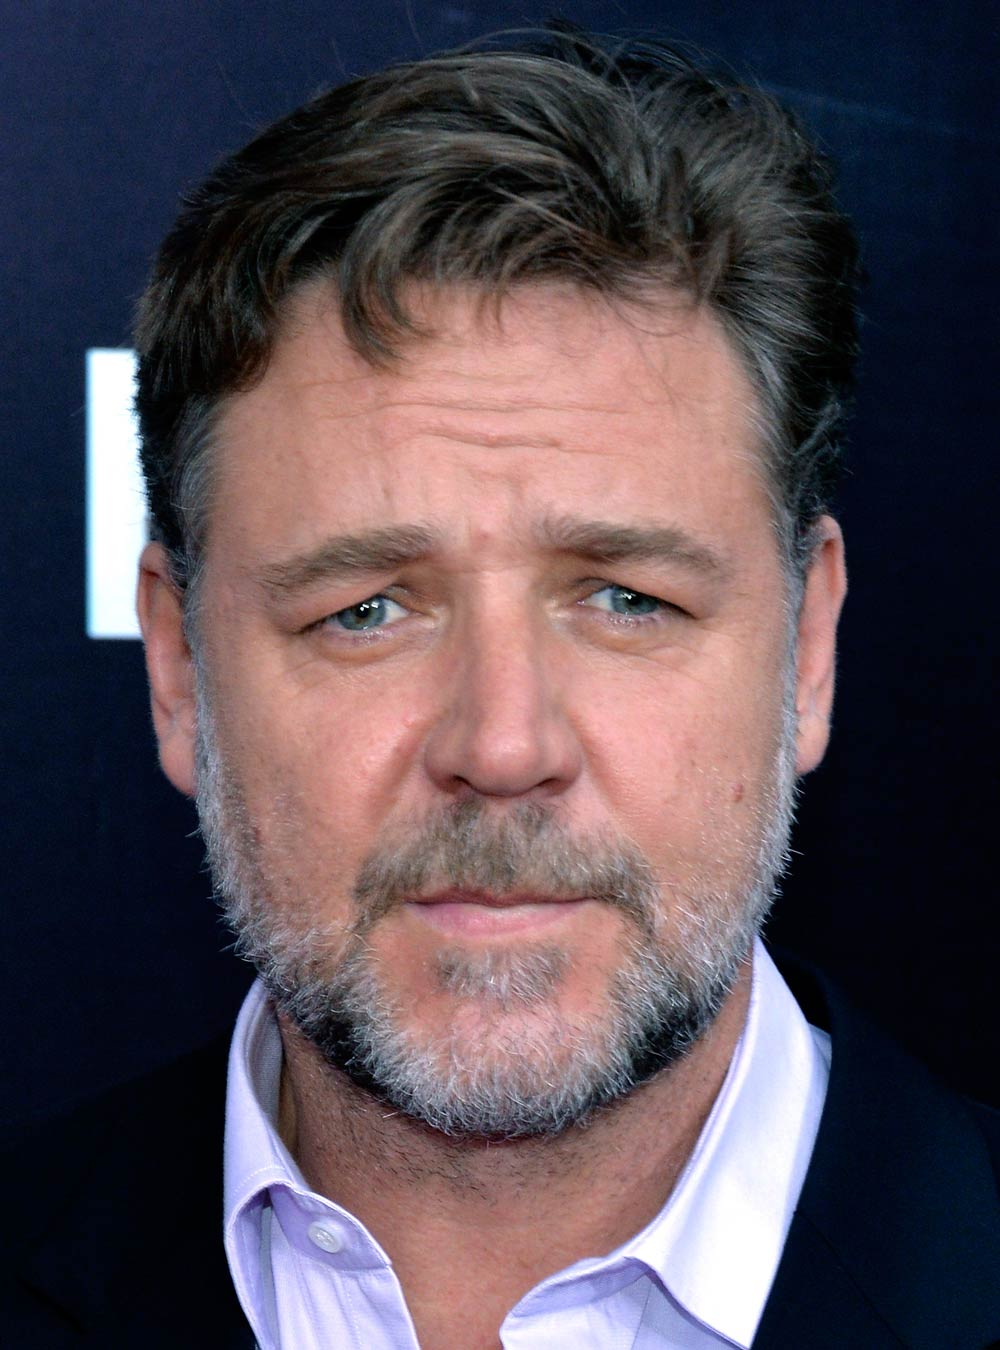 Wallpaper Hd 1080p Free Download Russell Crowe 198937 Wallpapers High Quality Download Free